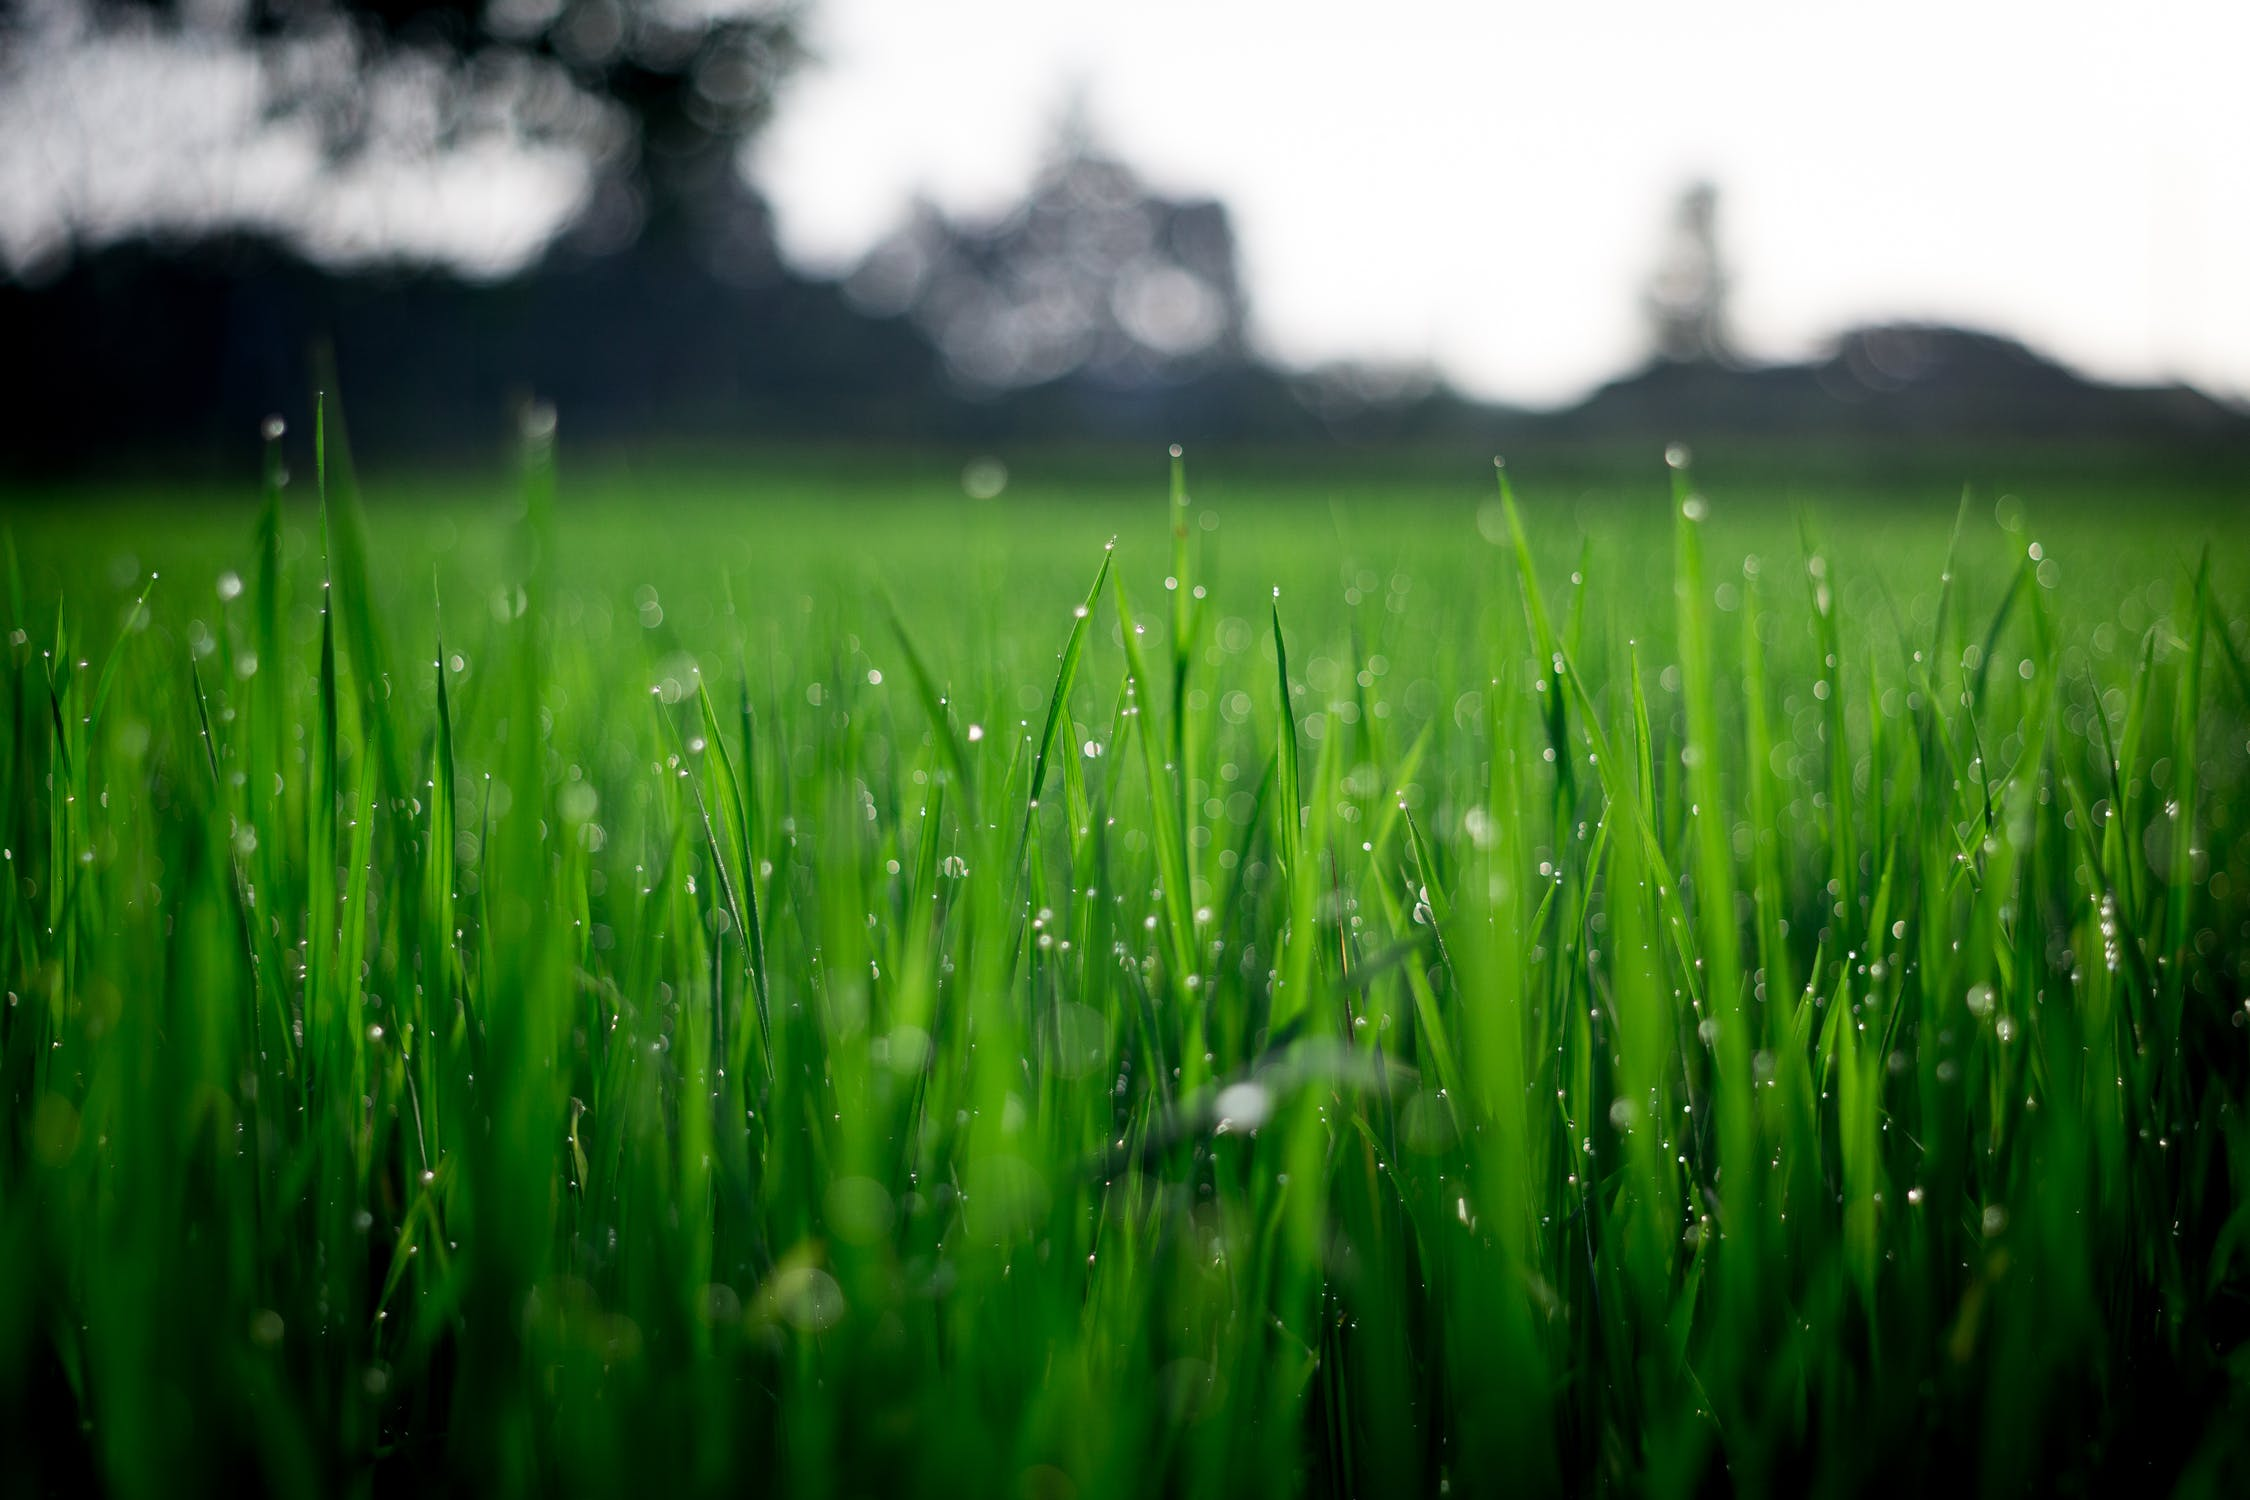 Close up image of healthy green lawn covered in morning dew